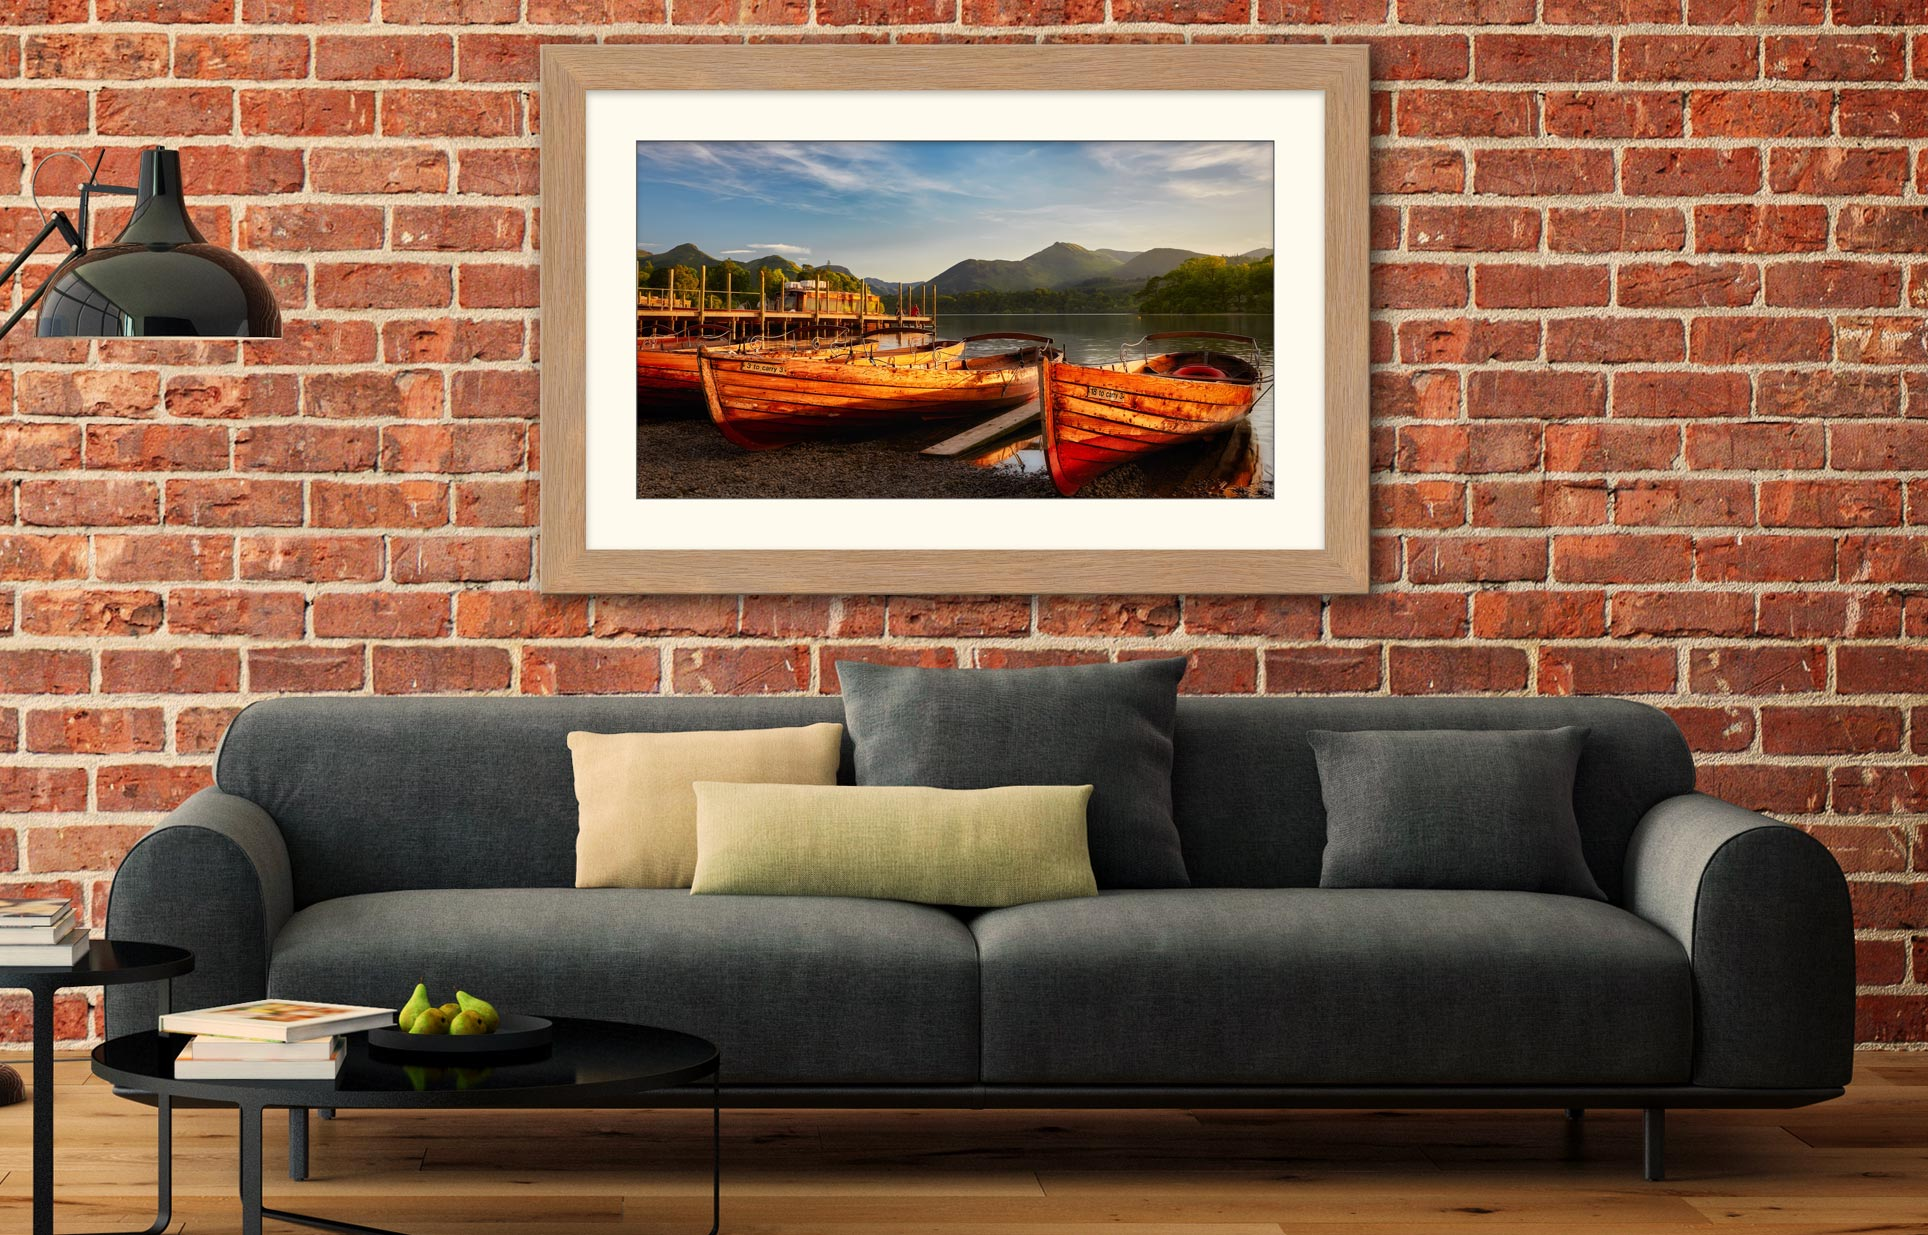 Golden Boats Keswick - Framed Print with Mount on Wall